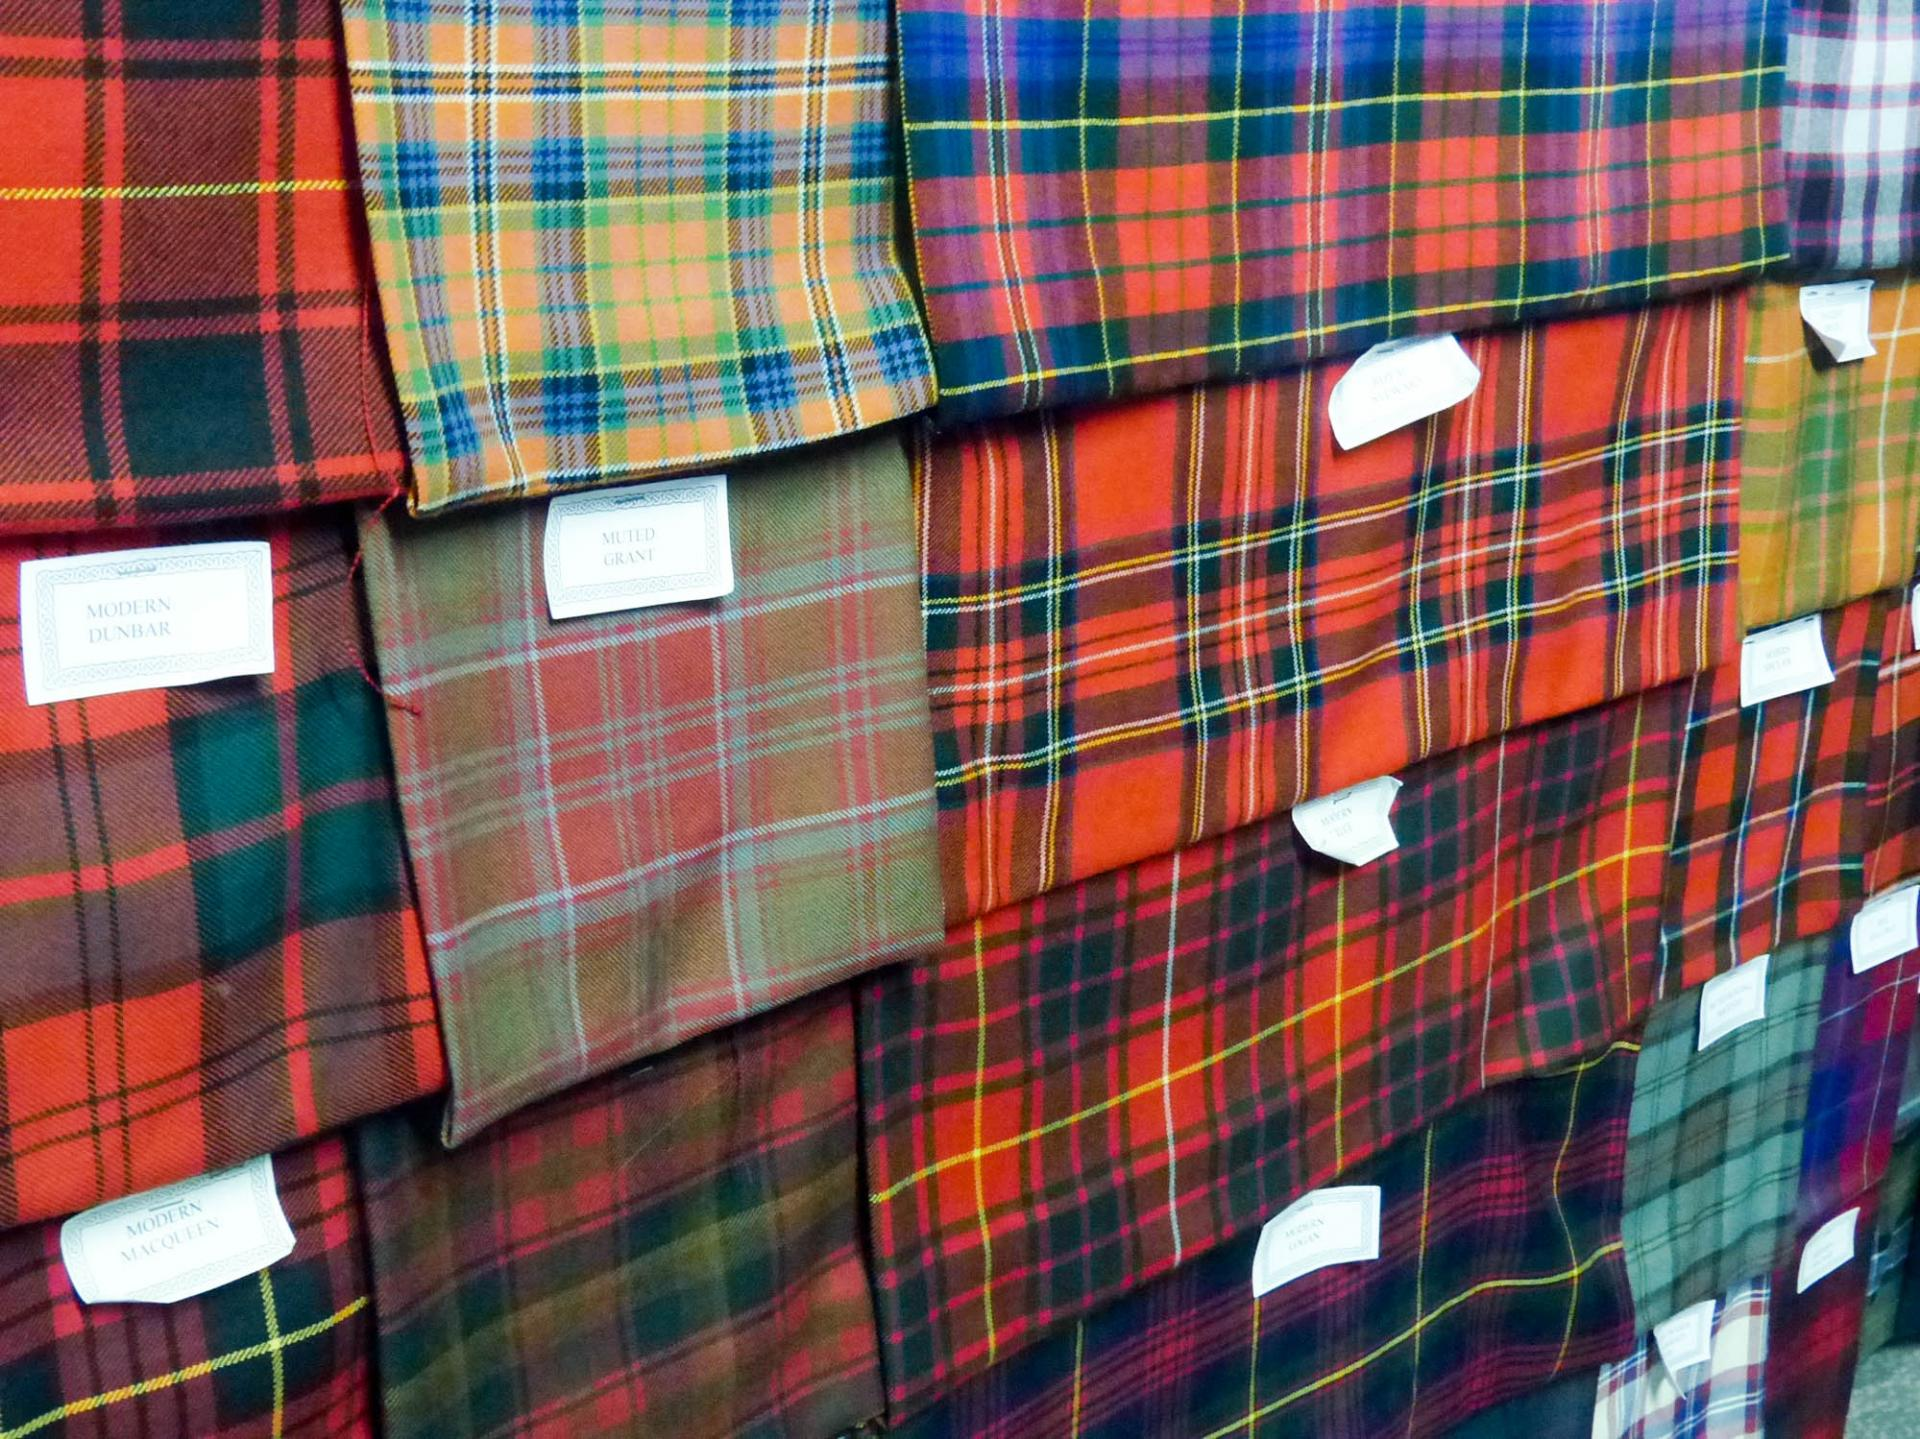 20 Fabrication de kilts à Inverness